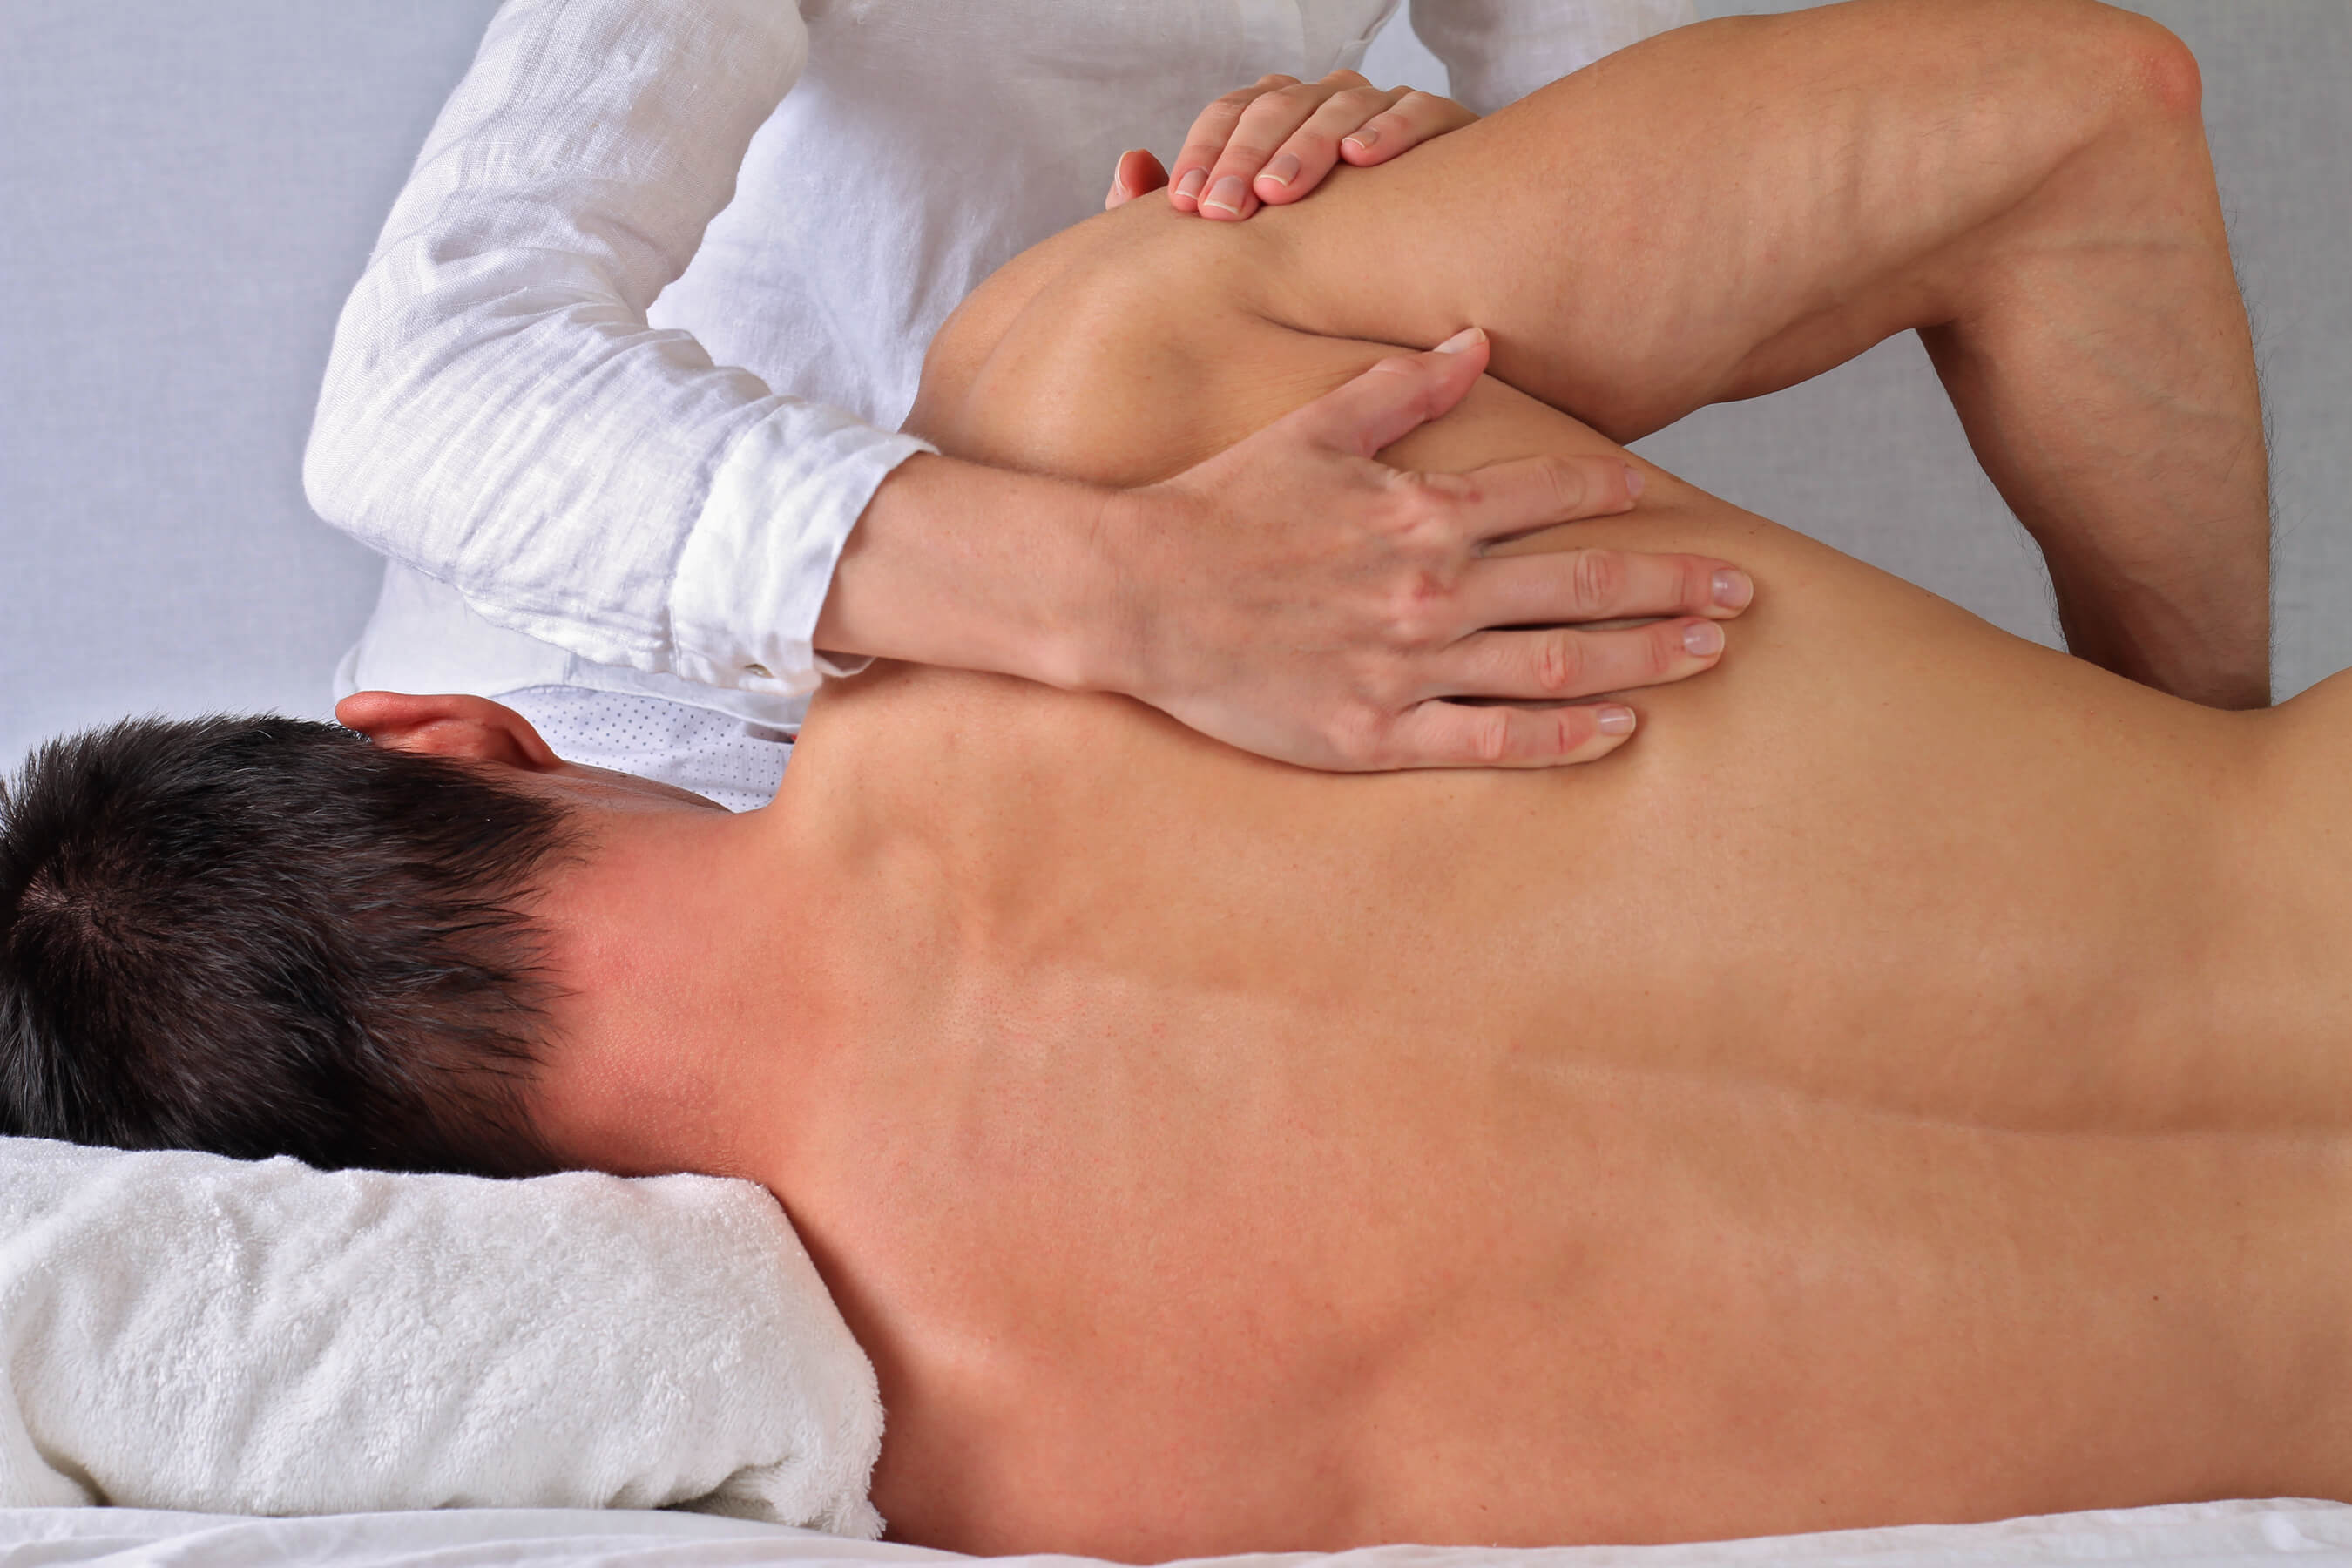 Treatment for pinched nerve pain in Warrenton